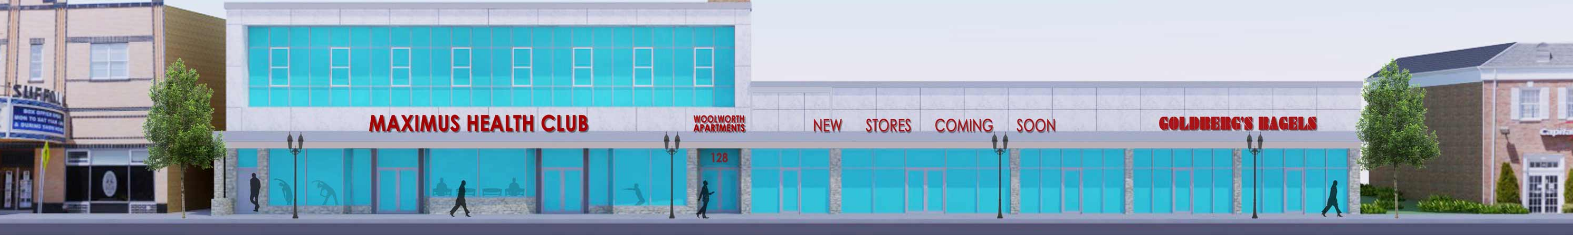 Woolworth Apartments header image.png